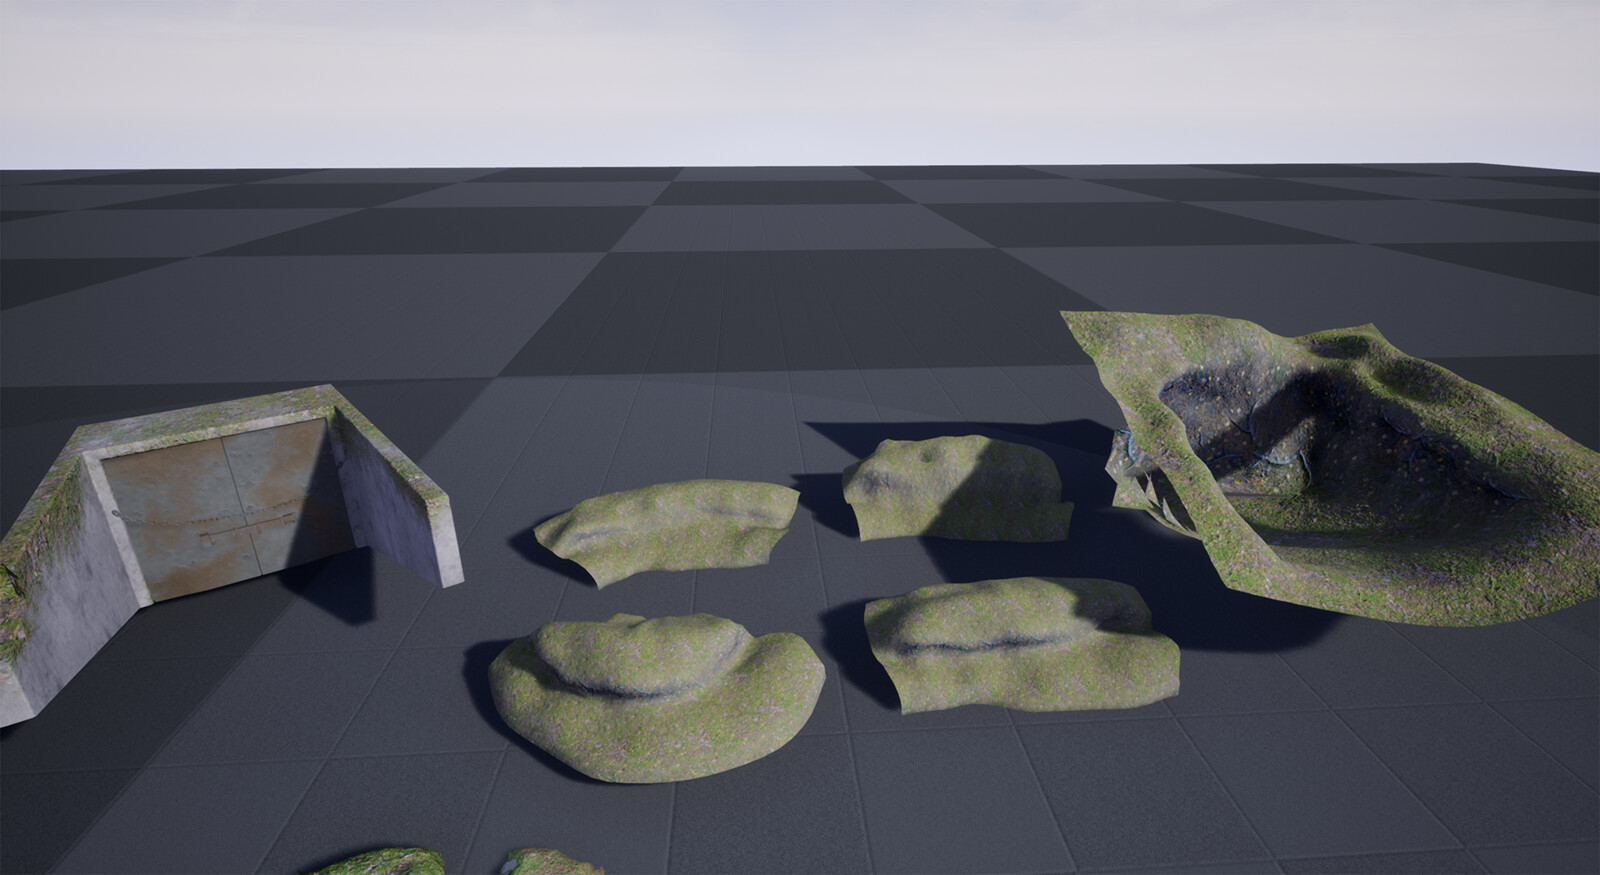 These are the main landscape builders I used to create more definition in the terrain. These used a vertex normal shader and a vertex color allowing me to paint in desired texture to further fit the landscape textures.